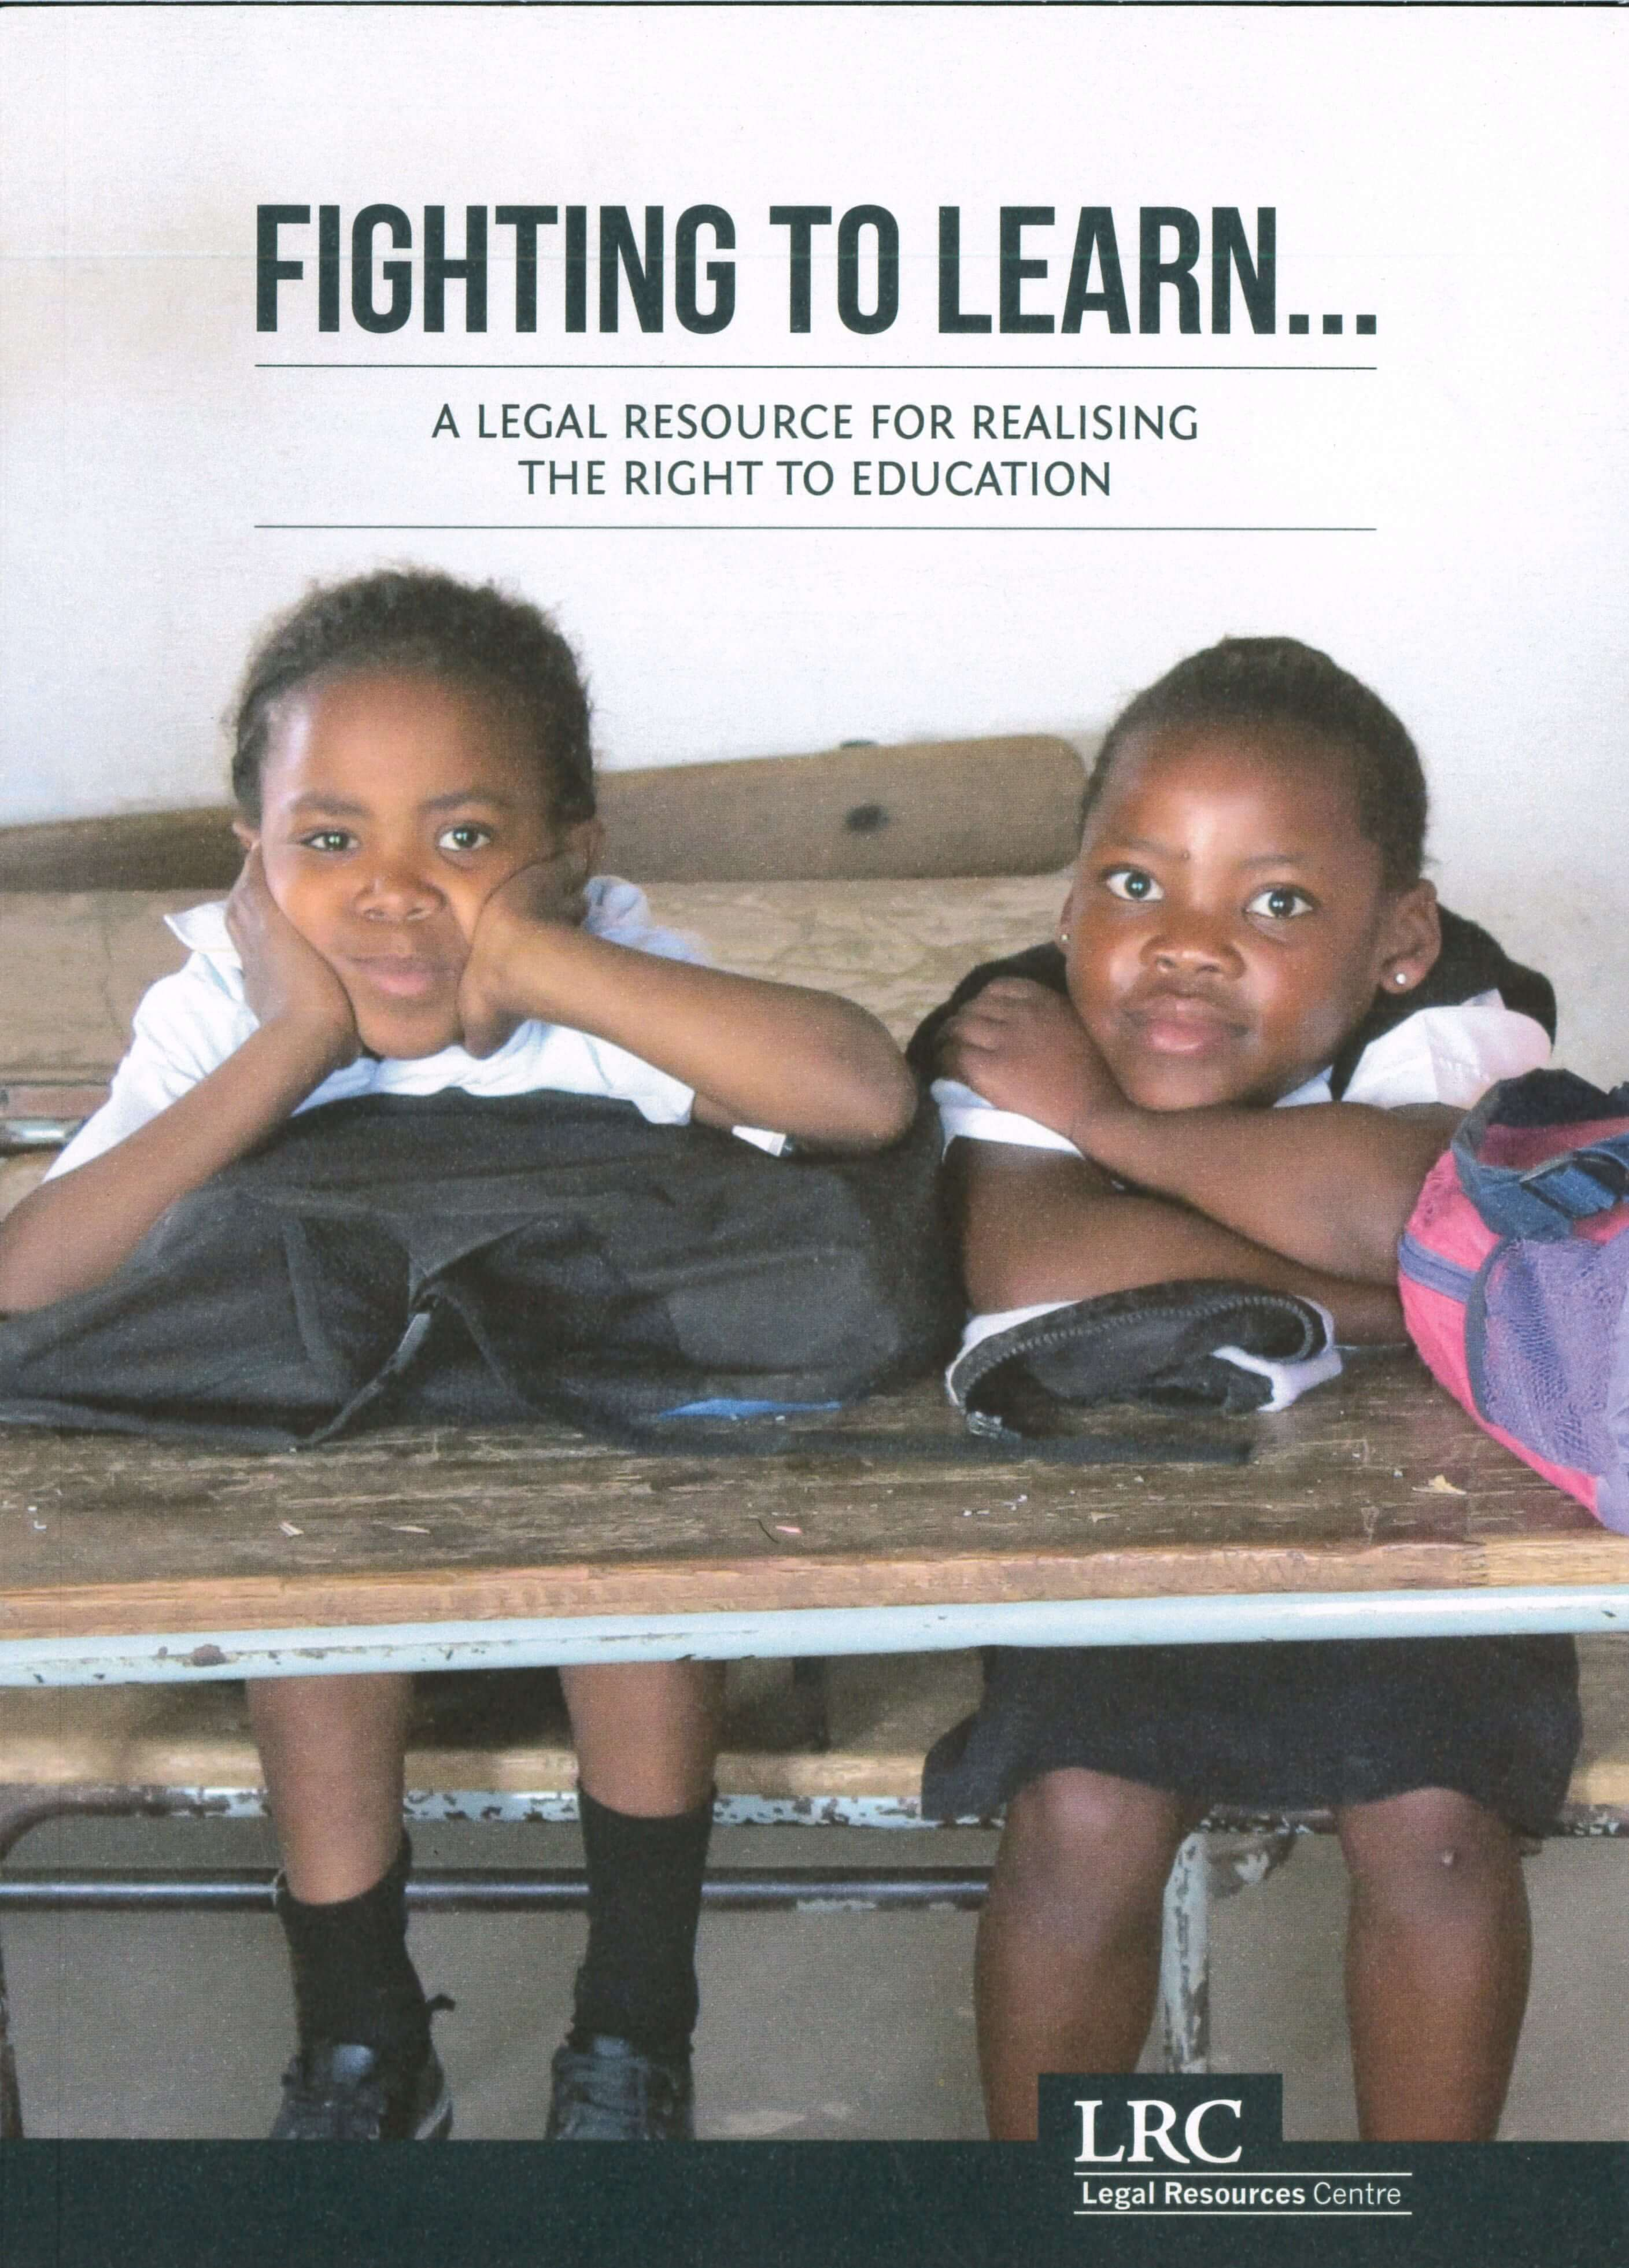 Fighting for the Right to Education in South Africa